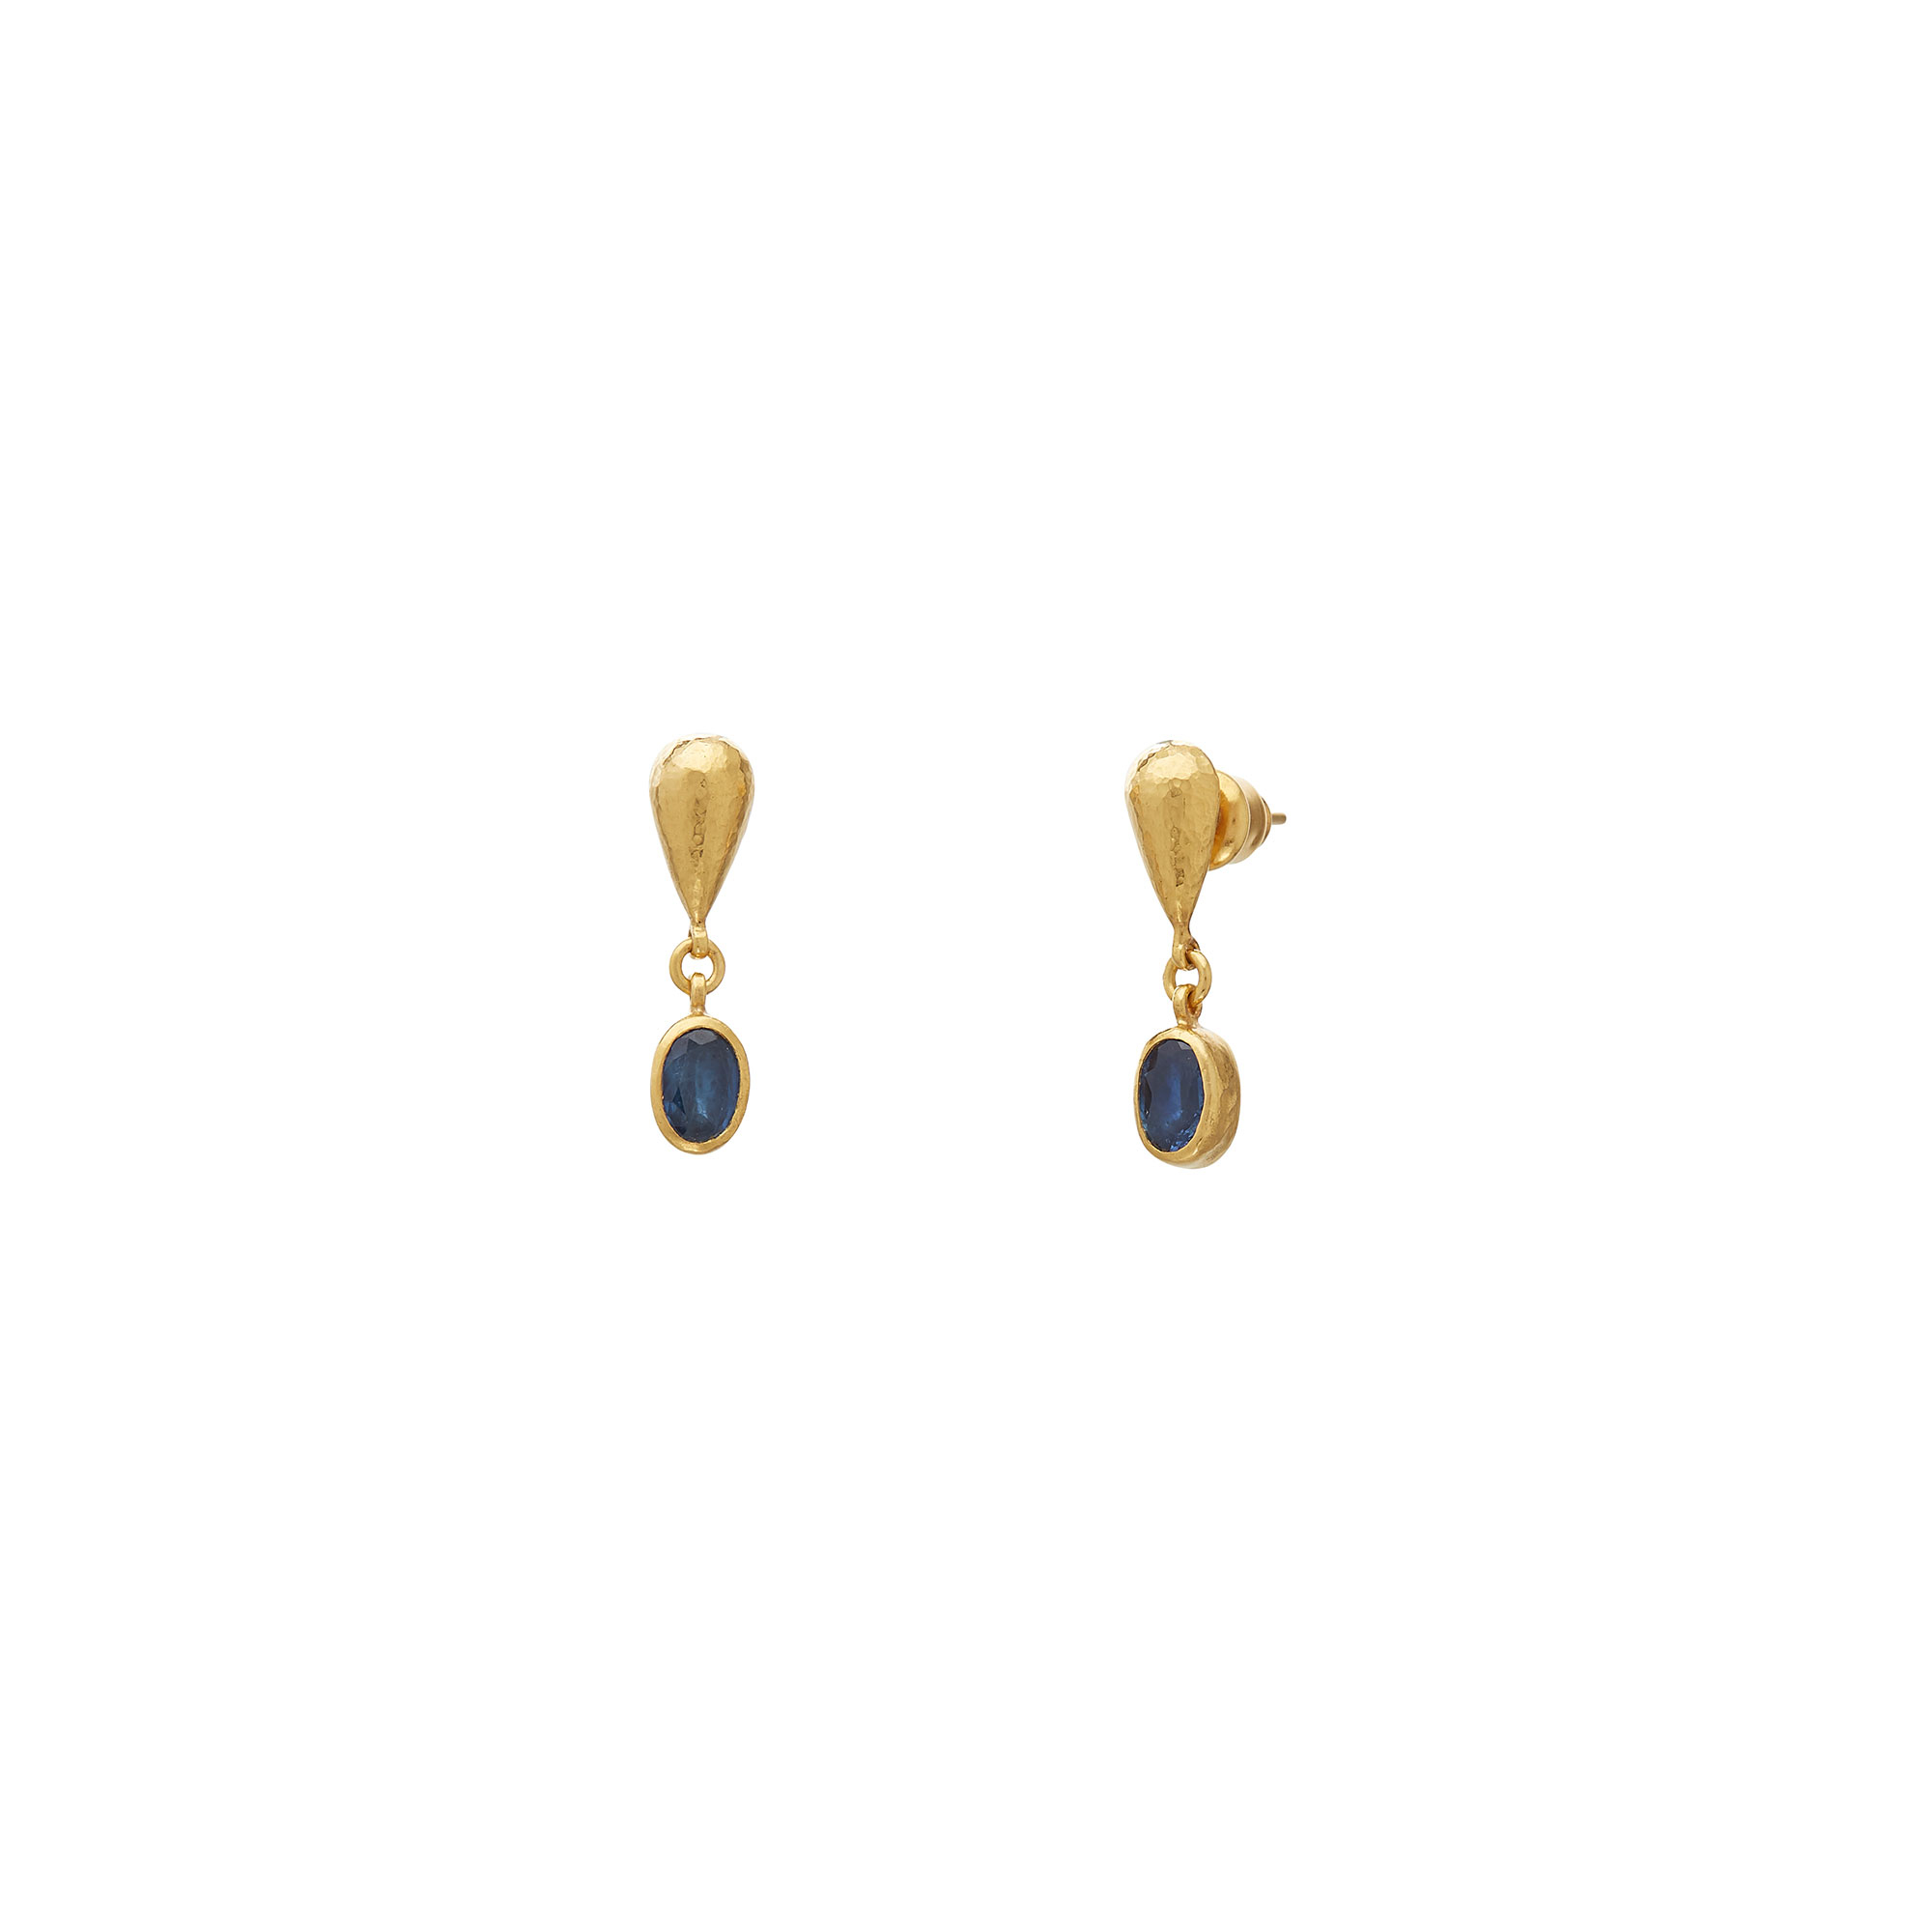 Gurhan 24K Yellow Gold 1.76cts  Sapphire Gold Earrings with Stones E-U26328-SA